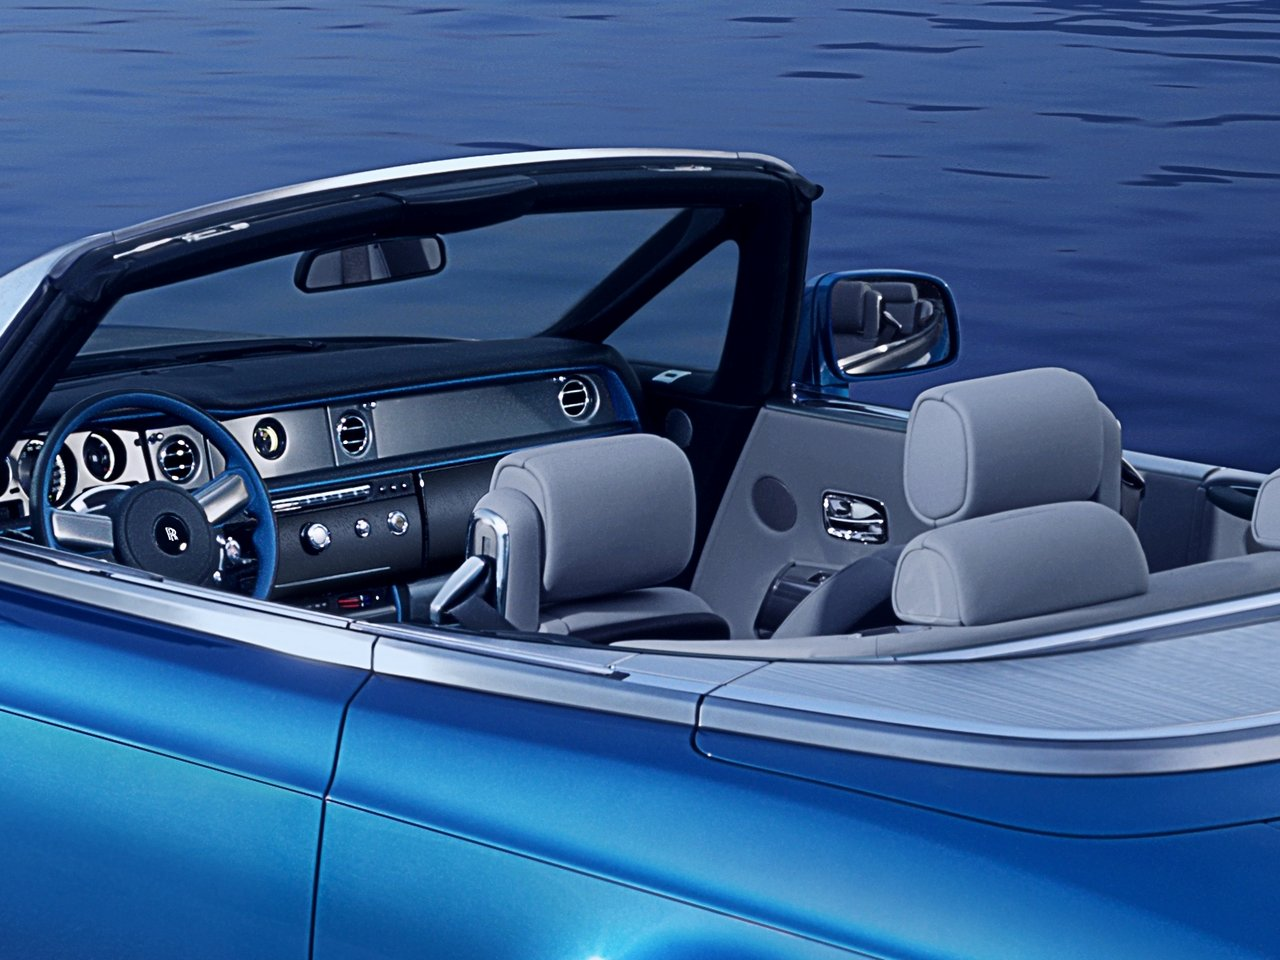 rolls-royce-phantom-drophead-coupe-waterspeed-collection_0-100_5